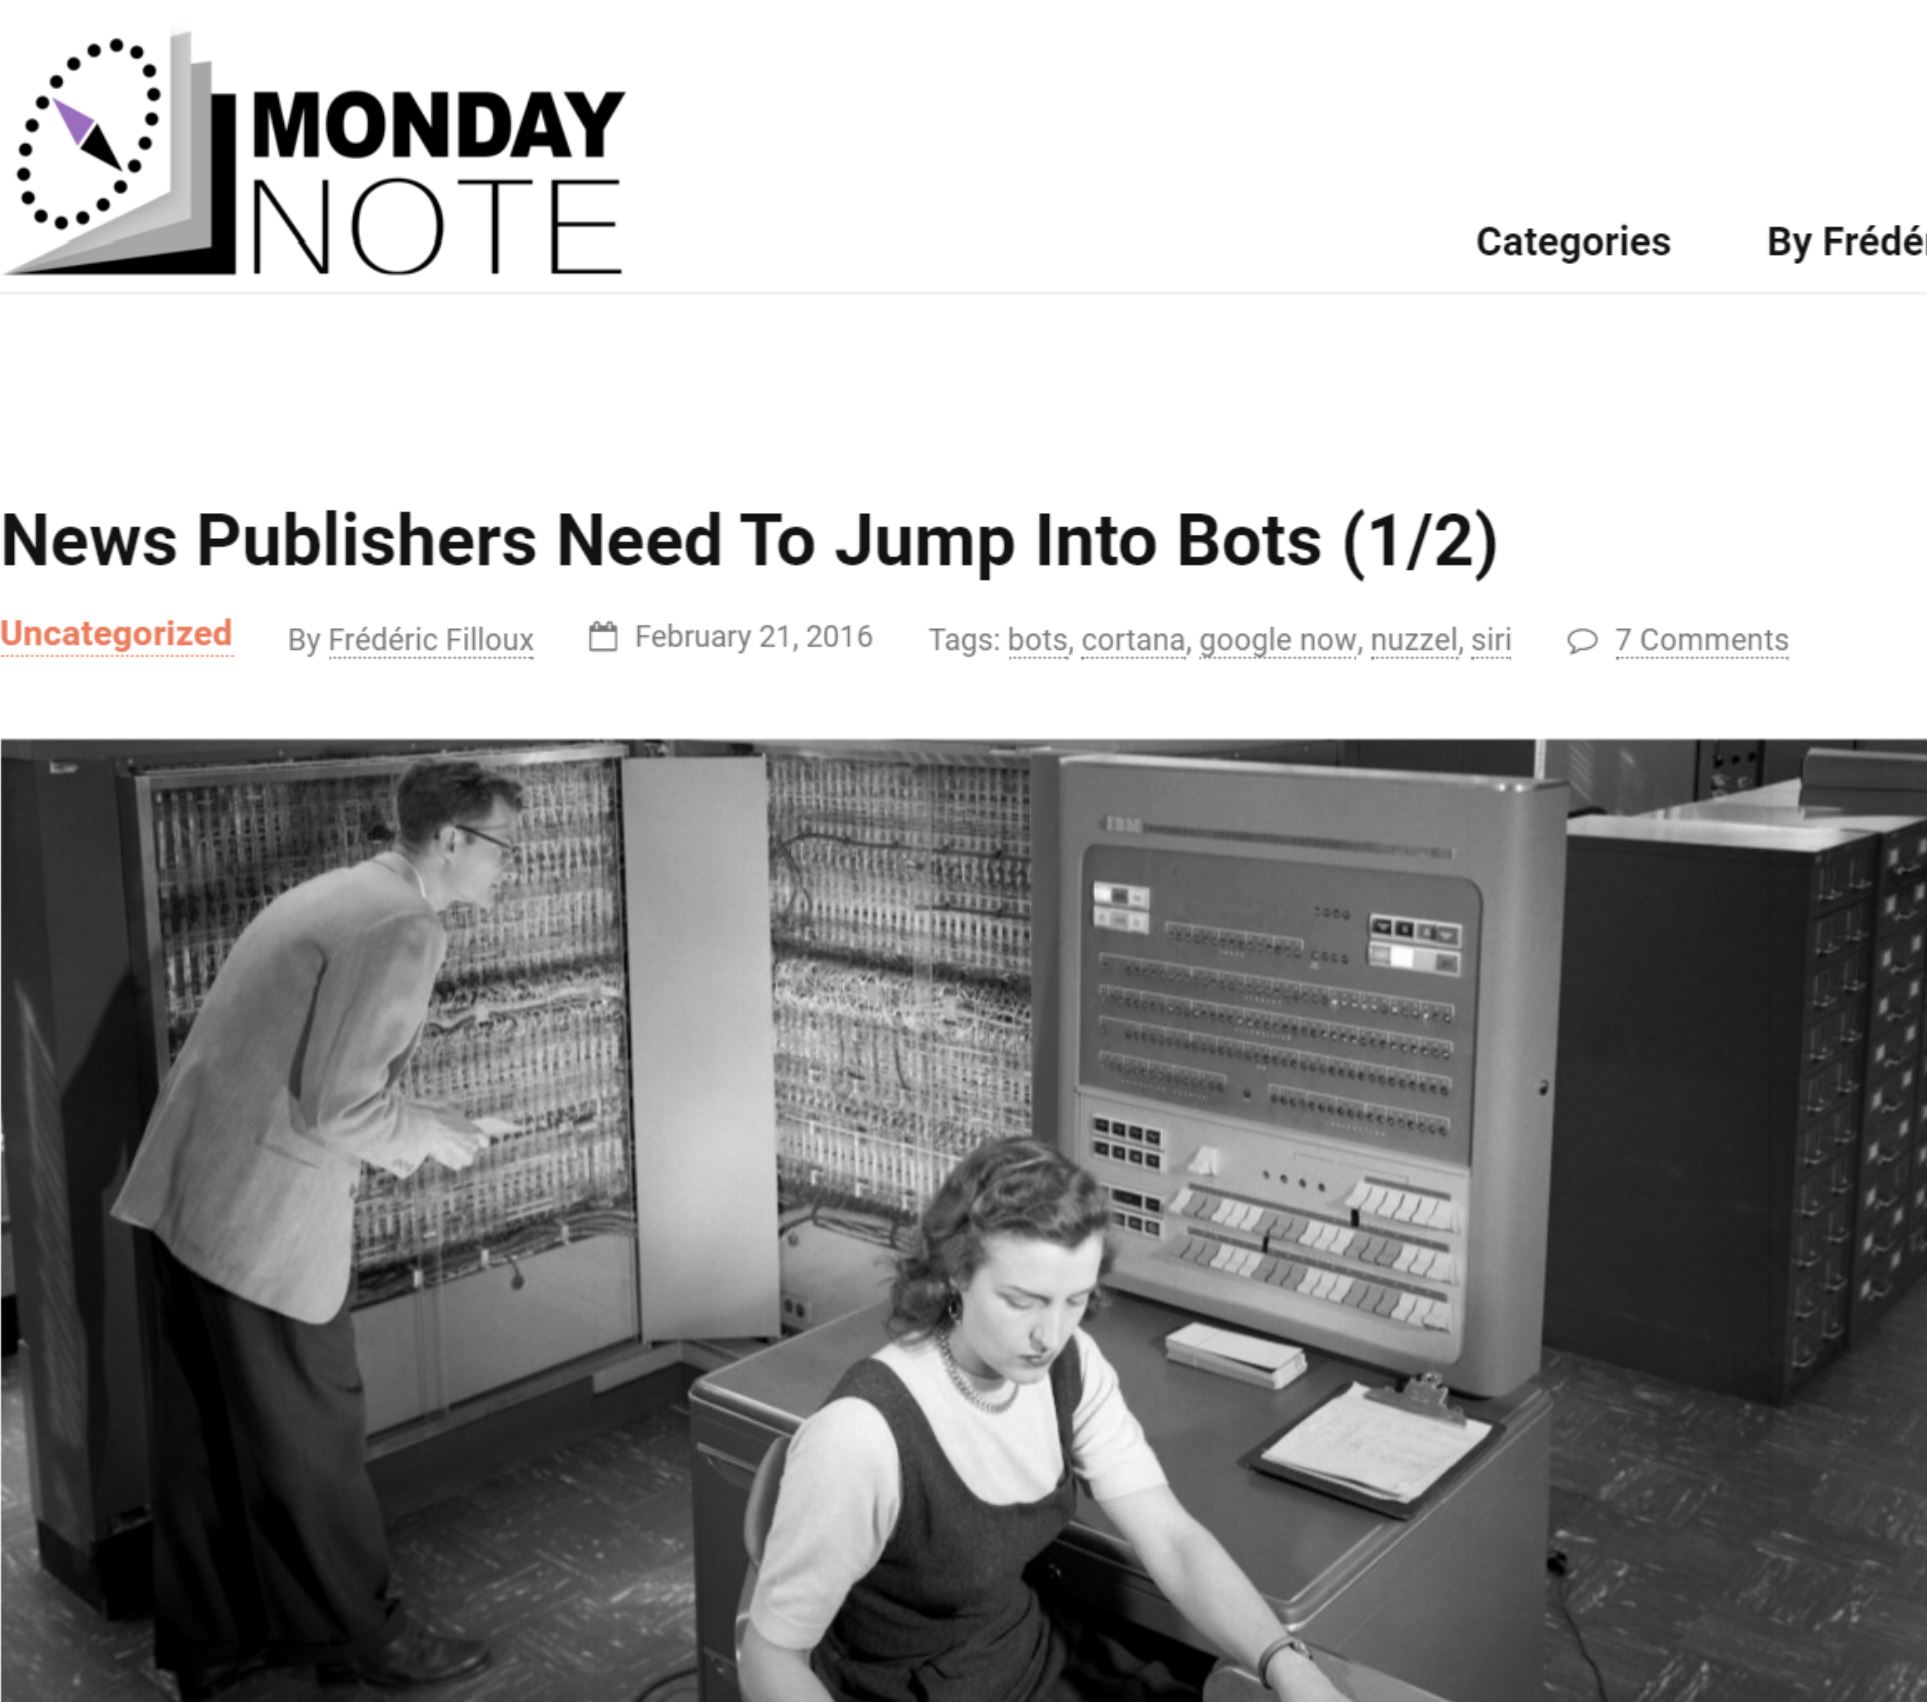 News Publishers Need To Jump Into Bots (1/2)